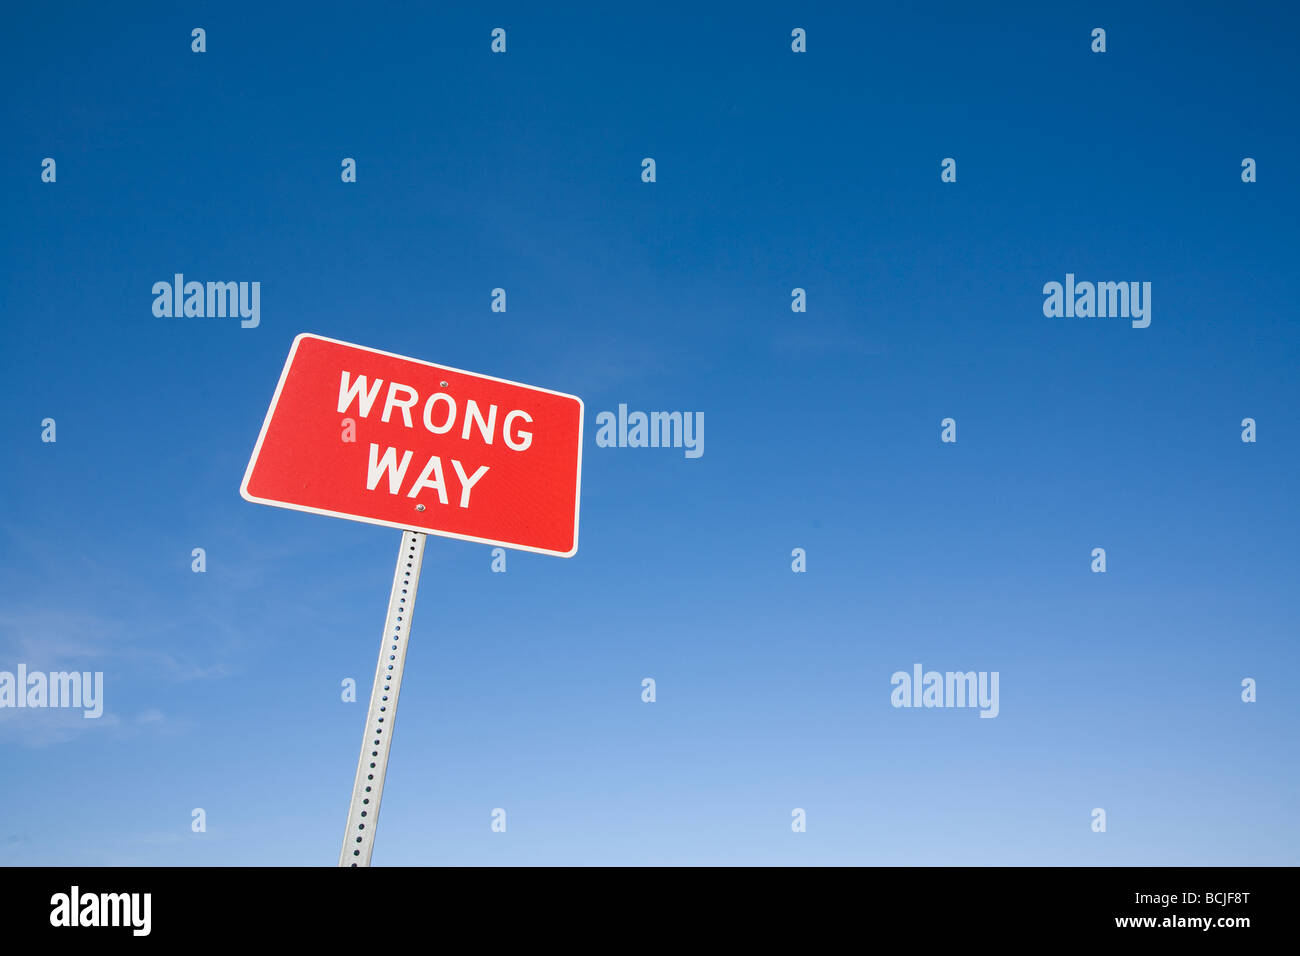 Red white WRONG WAY highway warning sign against blue sky - Stock Image